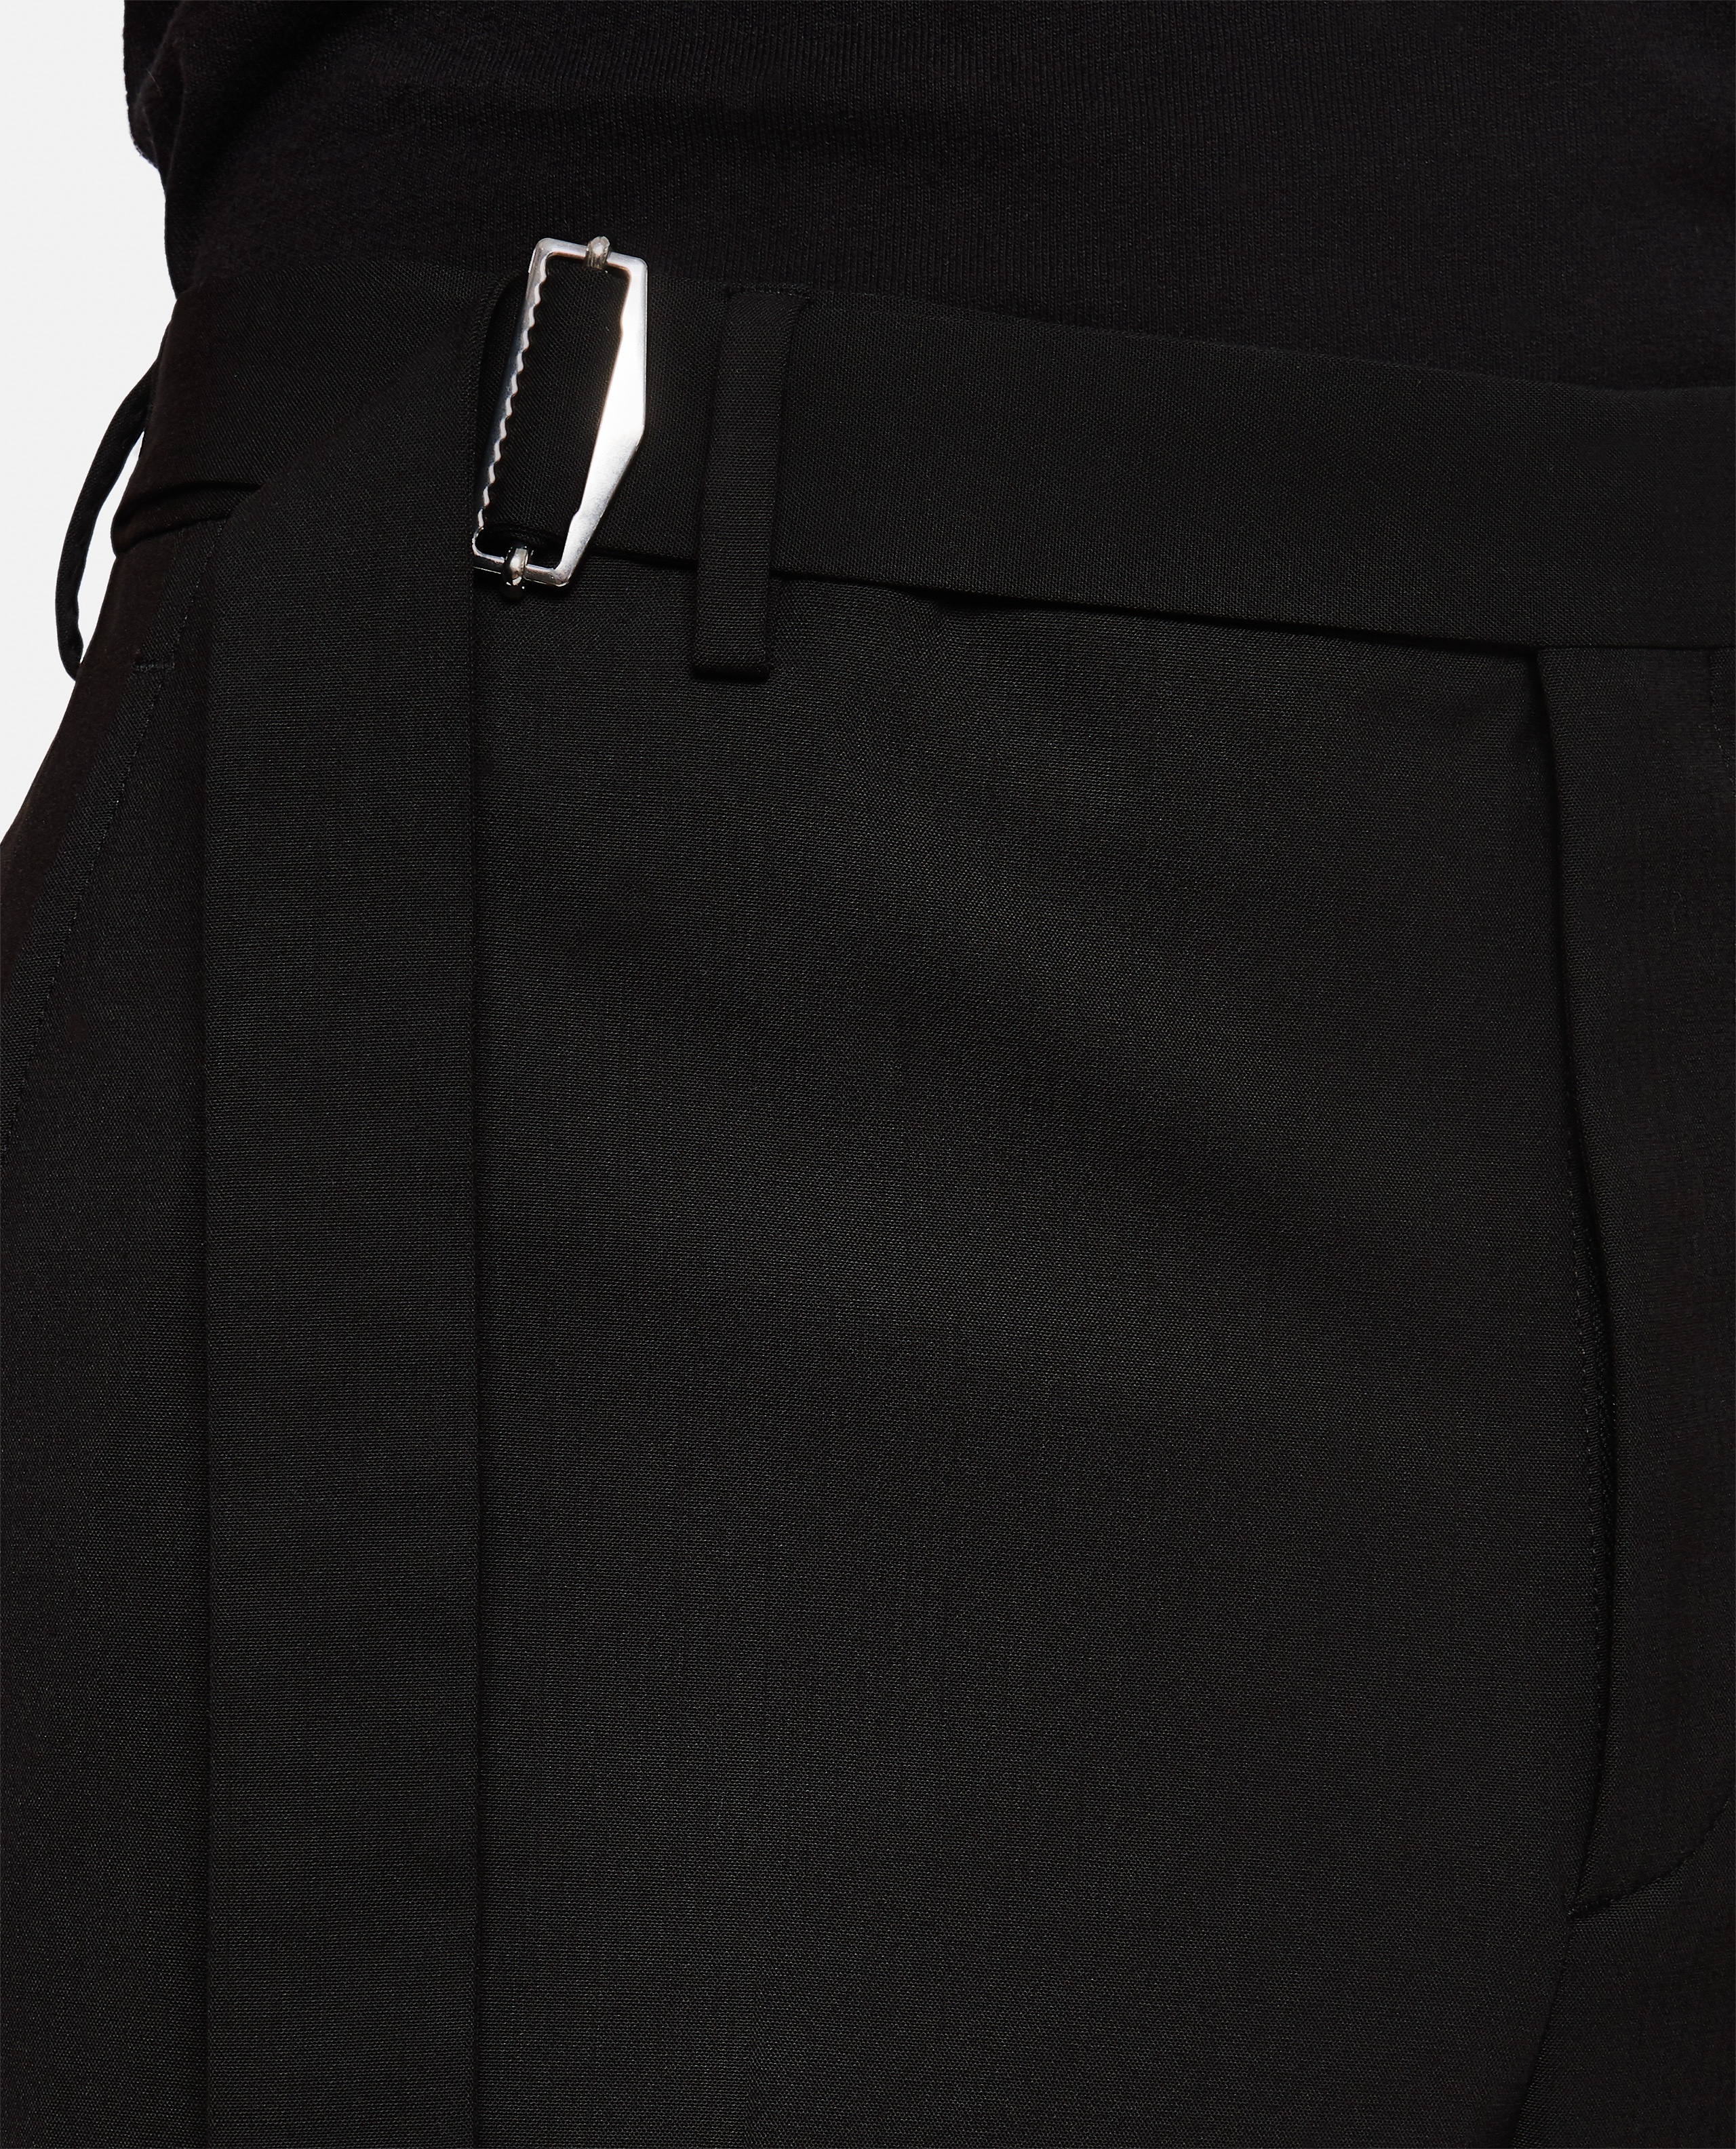 Valentino trousers in wool blend with buckle Men Valentino 000264010039012 4